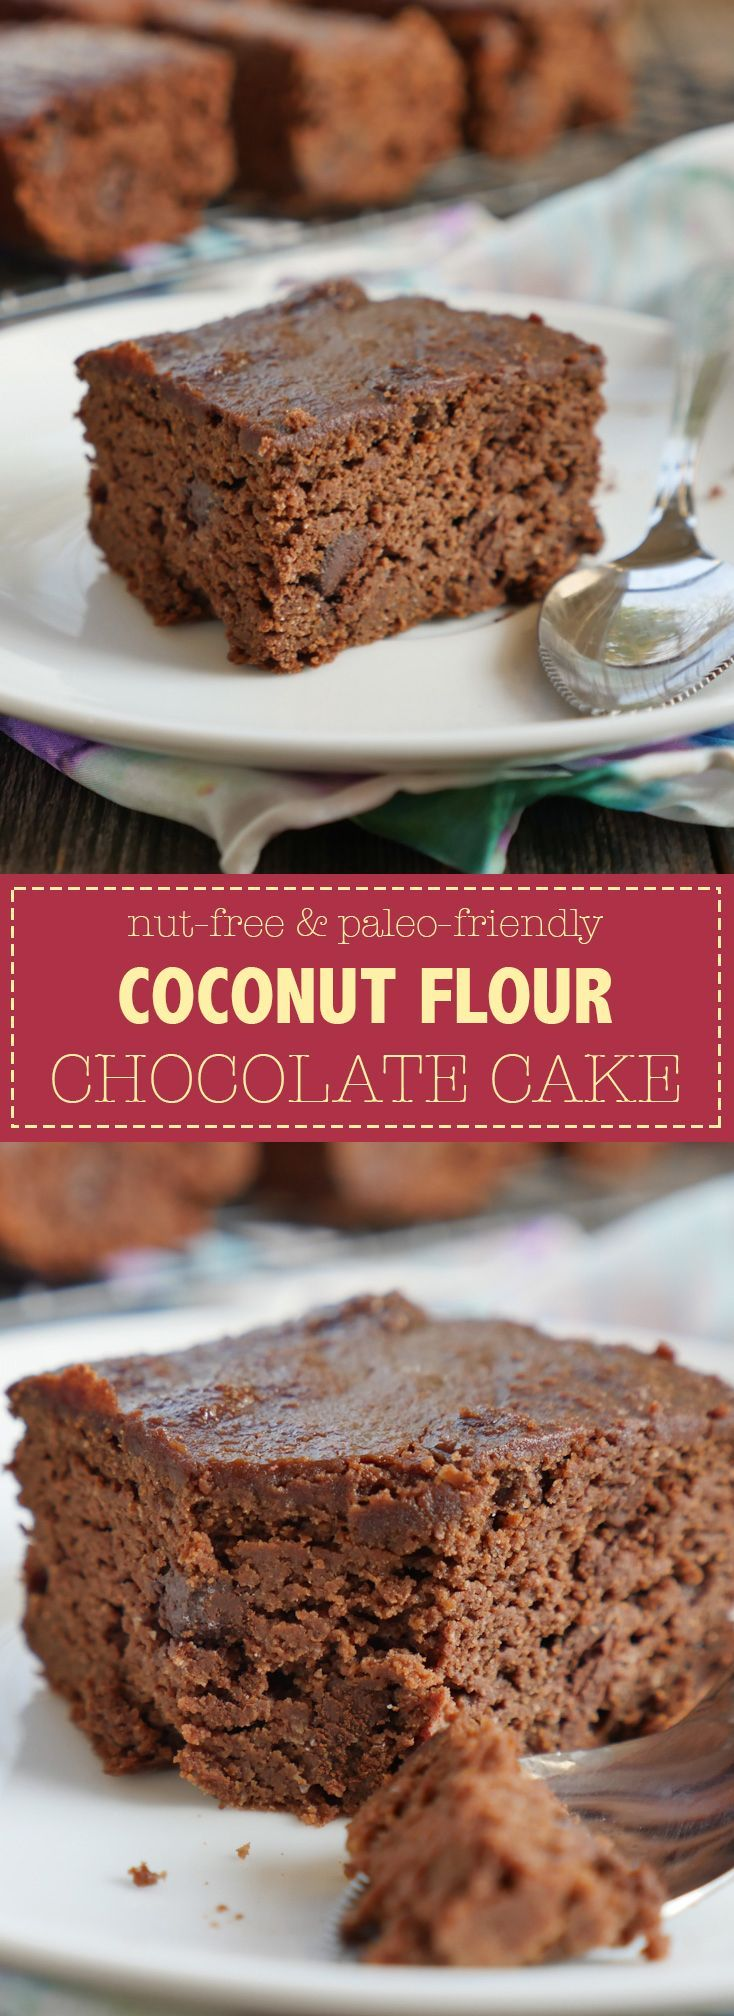 This is a nut-free chocolate cake recipe made with coconut flour. Recipe by Ashley of MyHeartBeets.com